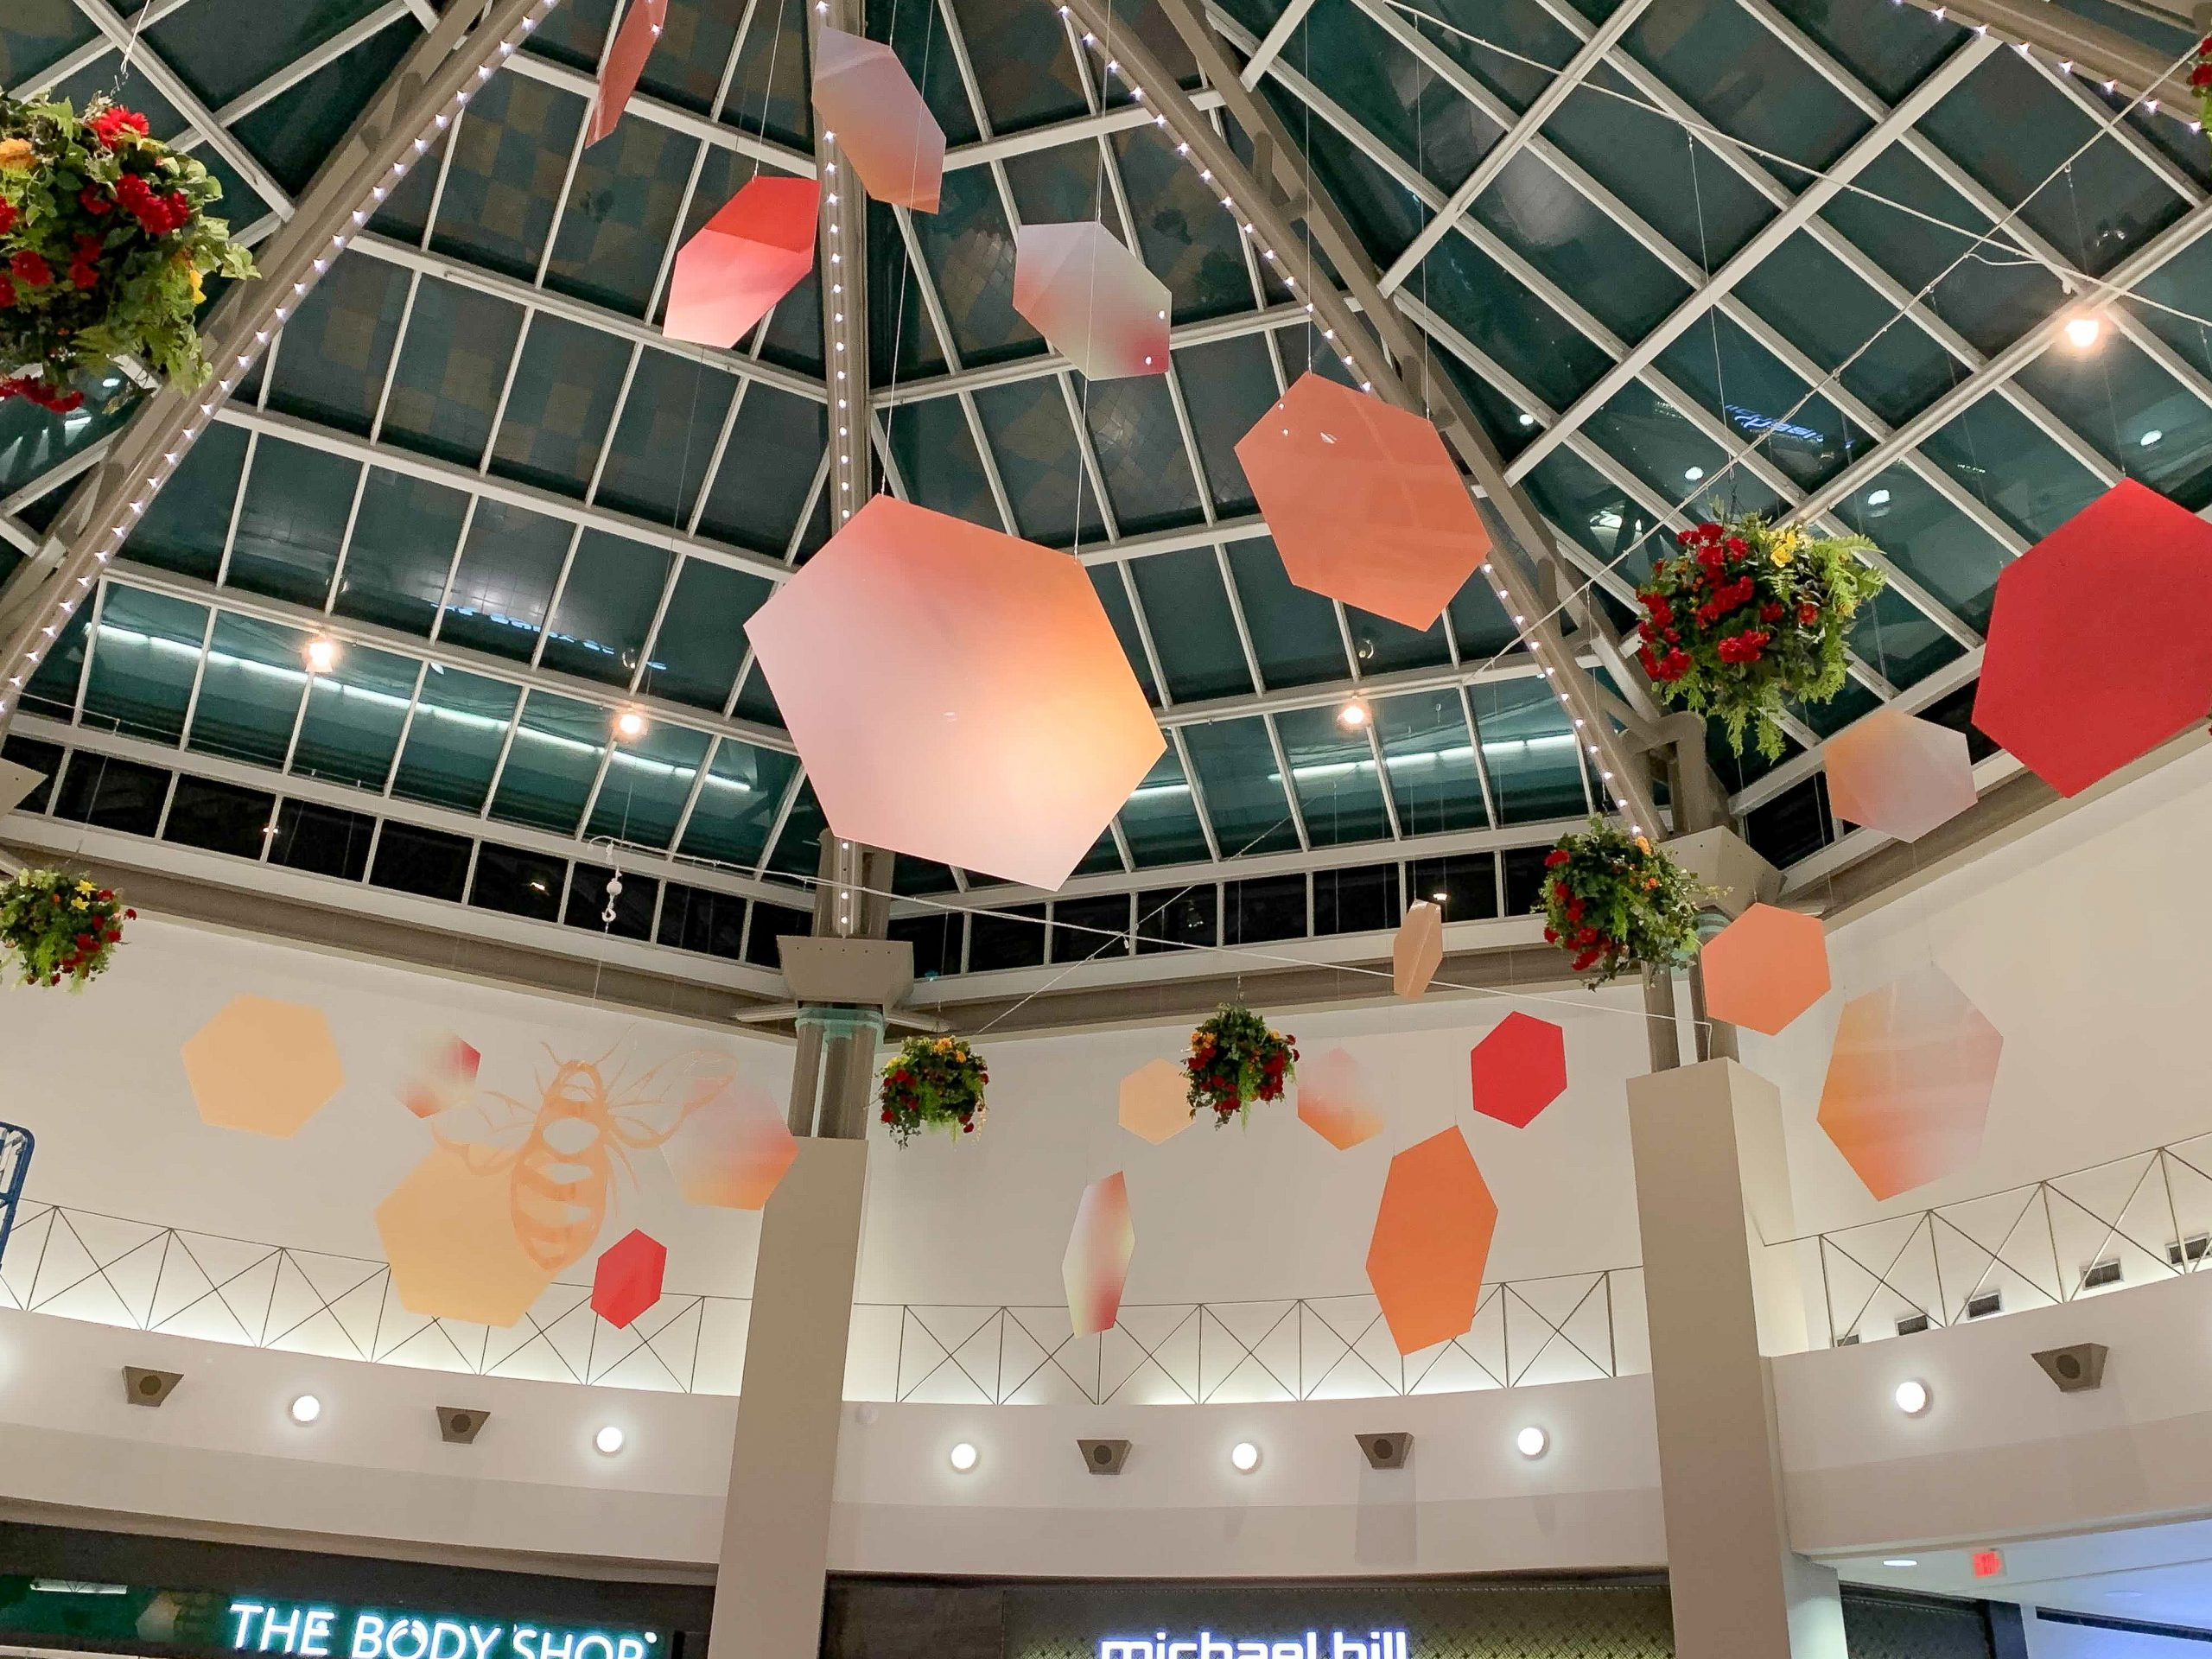 sevenoaks shopping centre bee custom display with hanging hexagons, hanging baskets and large bee cutout